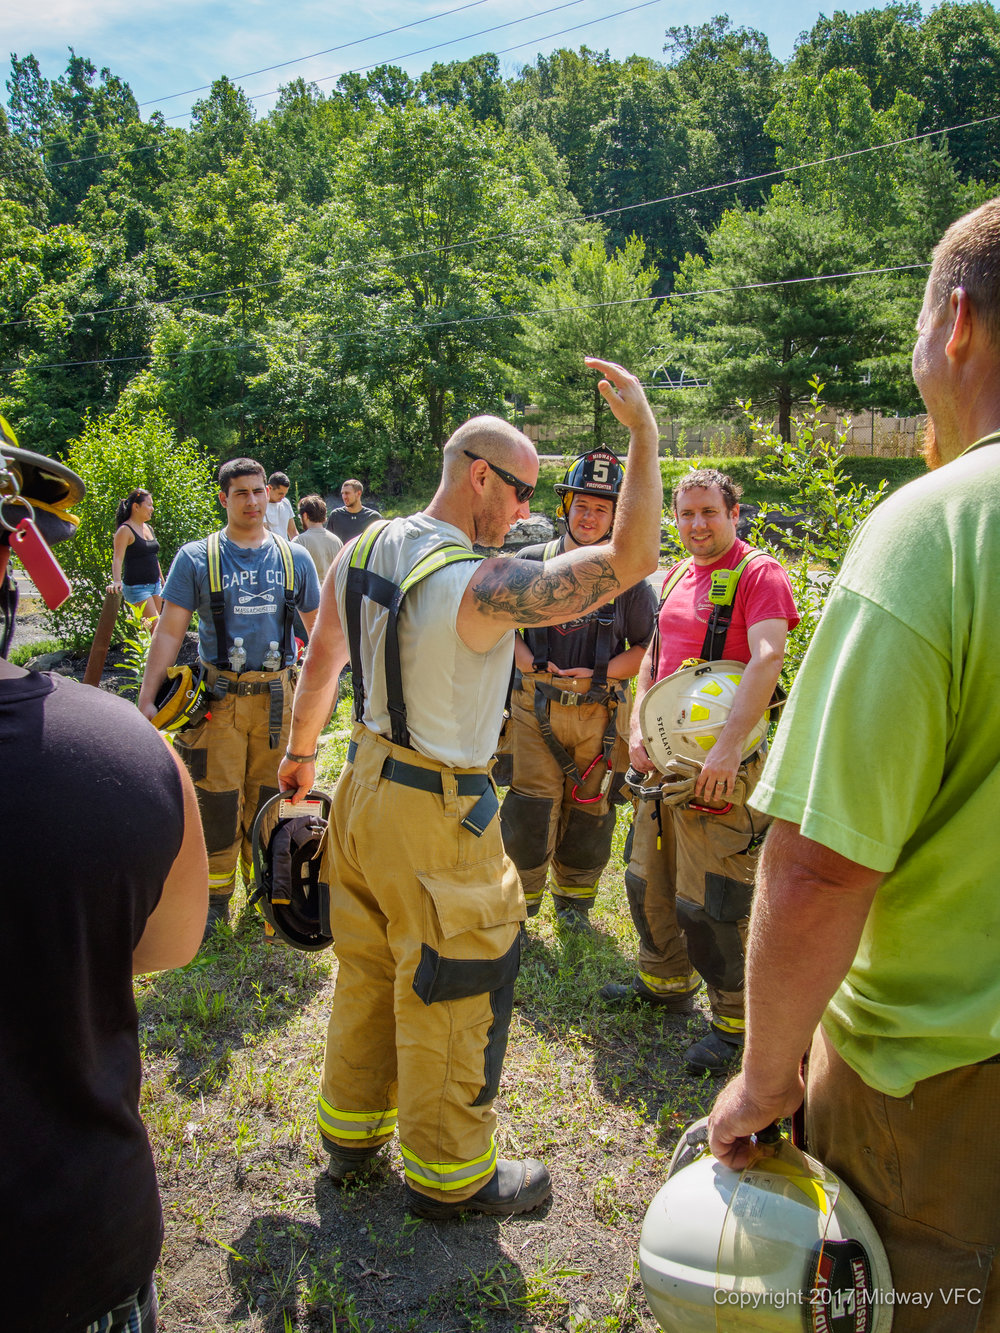 20170625-Rescue Training with Company 41-MLP10048.jpg